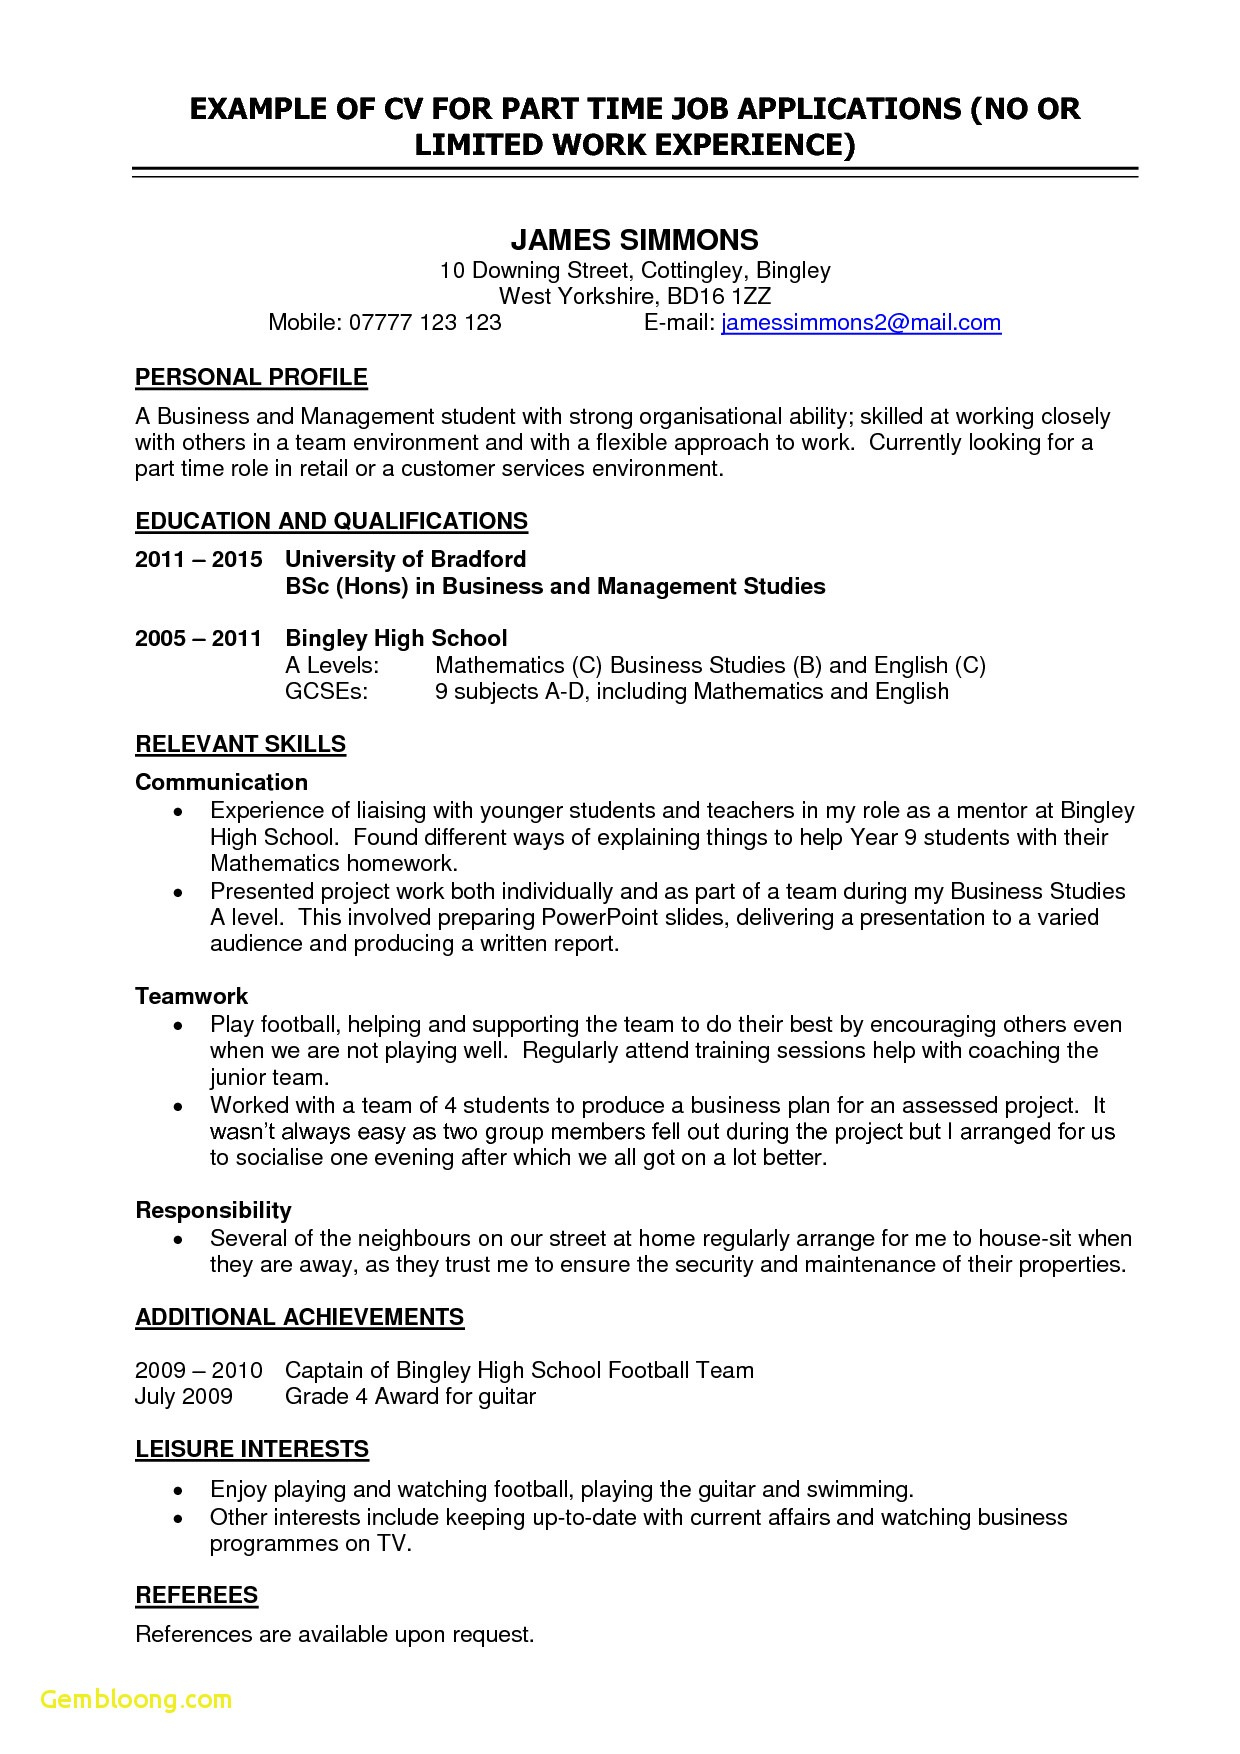 Part Time Job Offer Letter Template - College Resume Templates Resume Outline Examples Unique Od